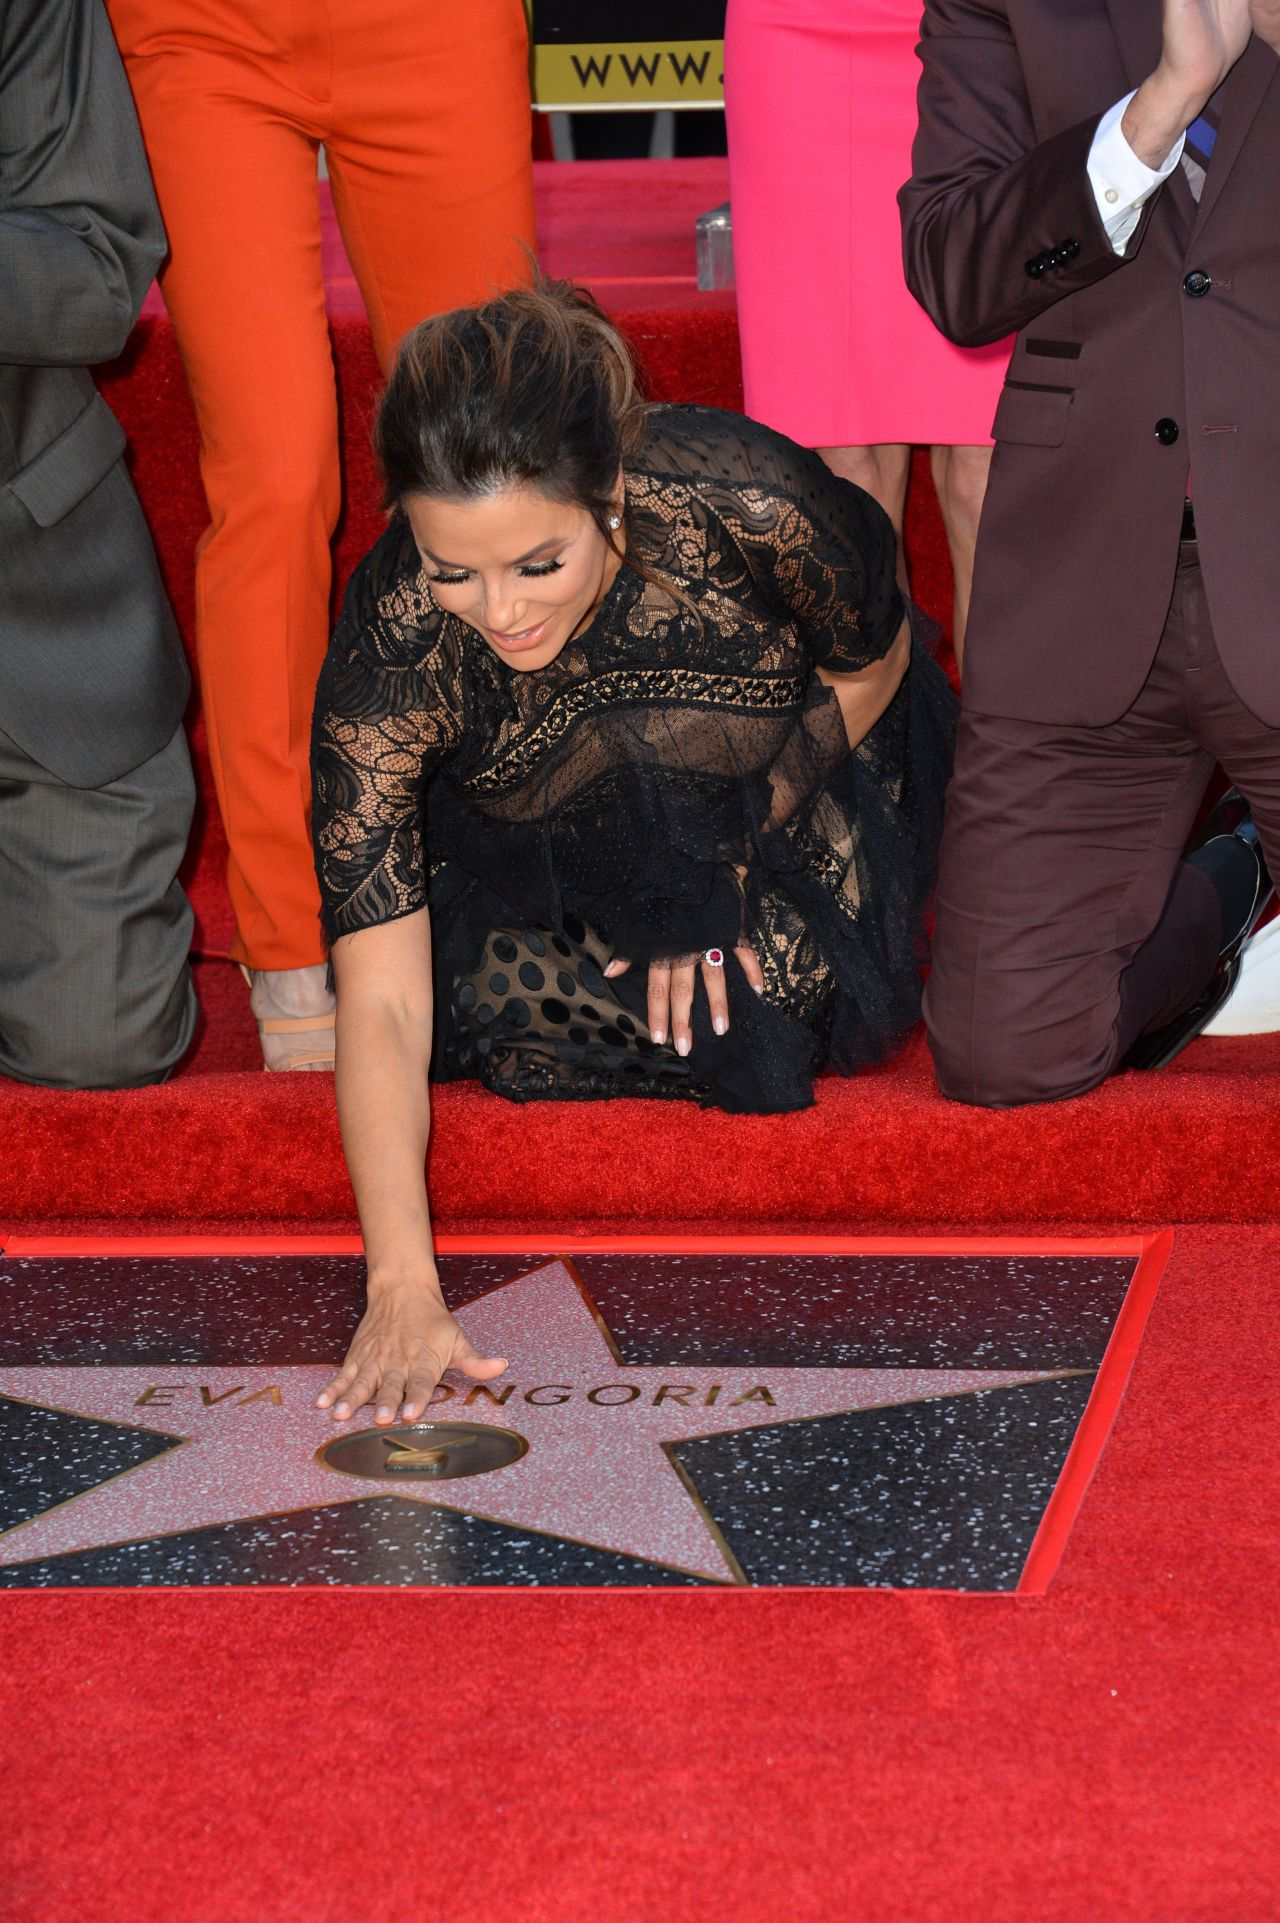 http://celebmafia.com/wp-content/uploads/2018/04/eva-longoria-hollywood-walk-of-fame-in-la-12.jpg